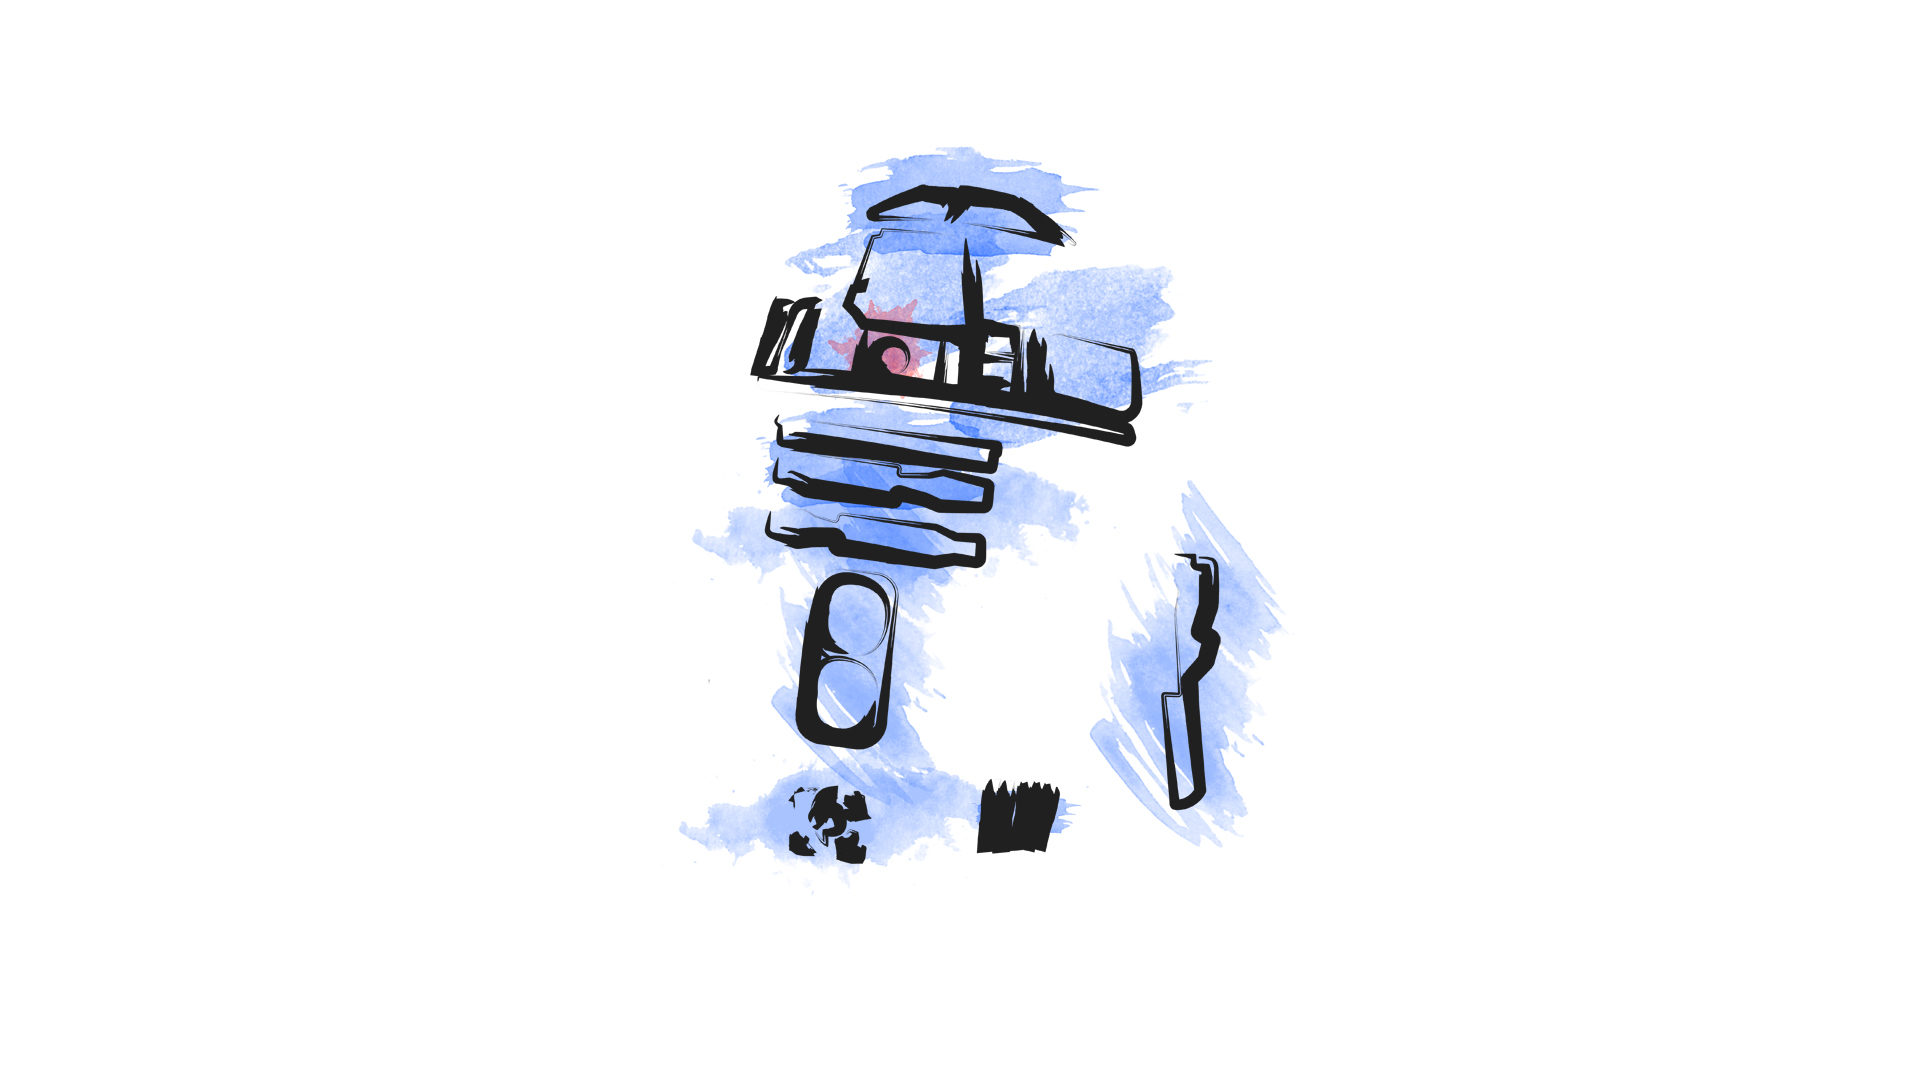 R2d2 Wallpaper | HD Picturez